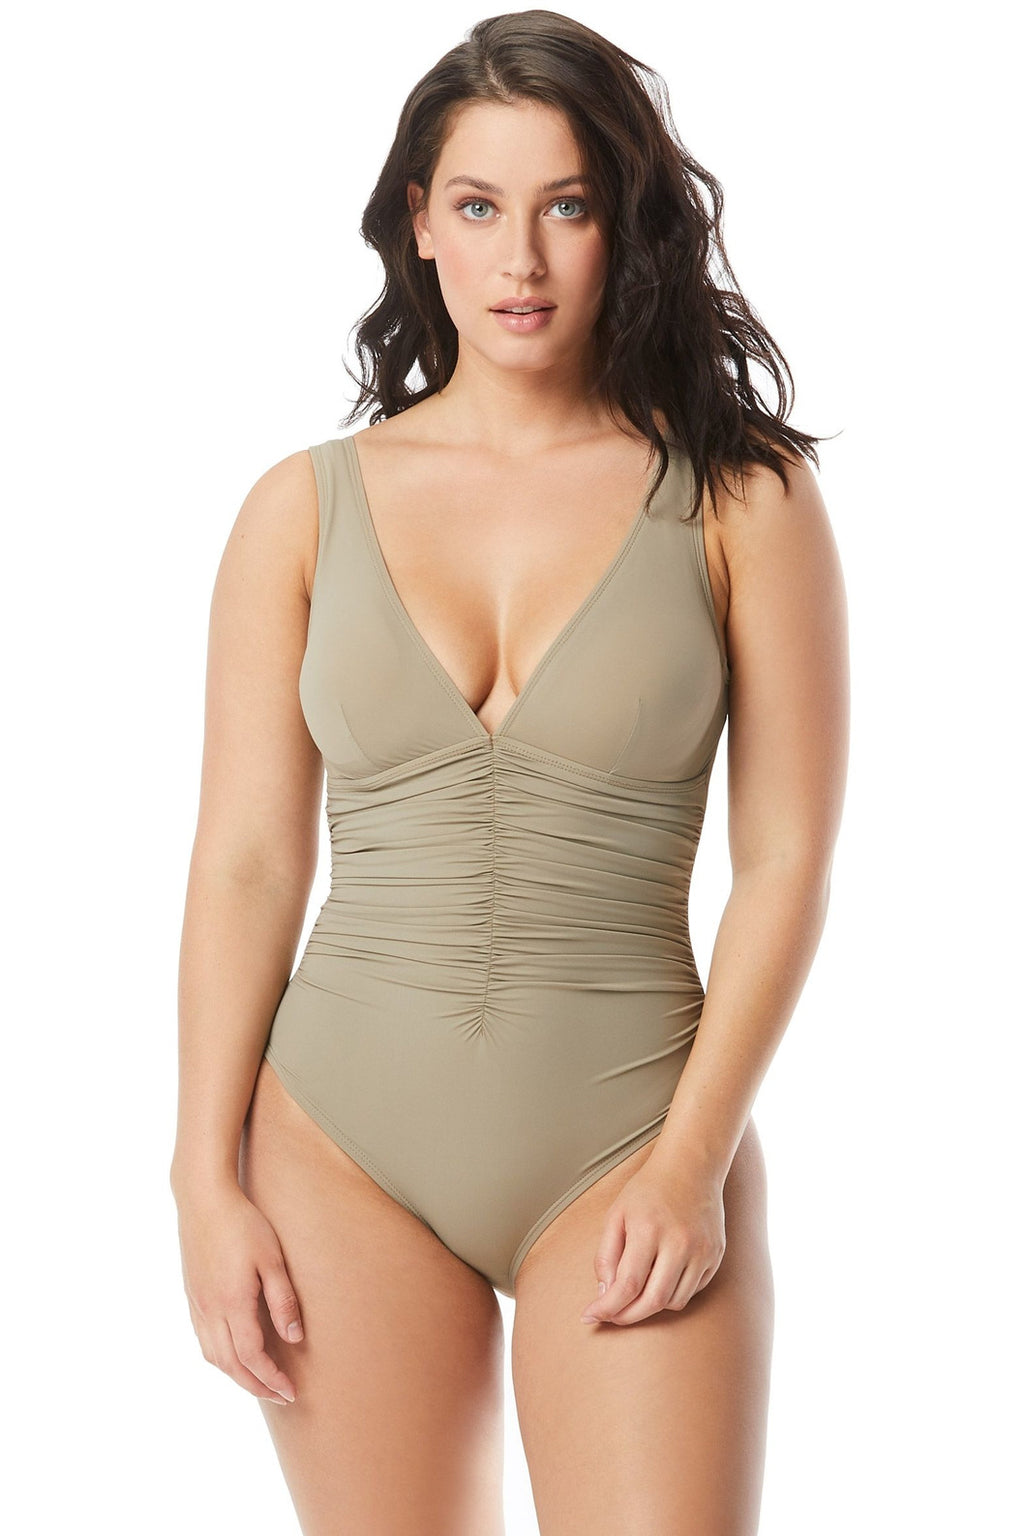 Contours by Coco Reef Solitaire V-Neck Underwire One Piece Swimsuit - Keepsake